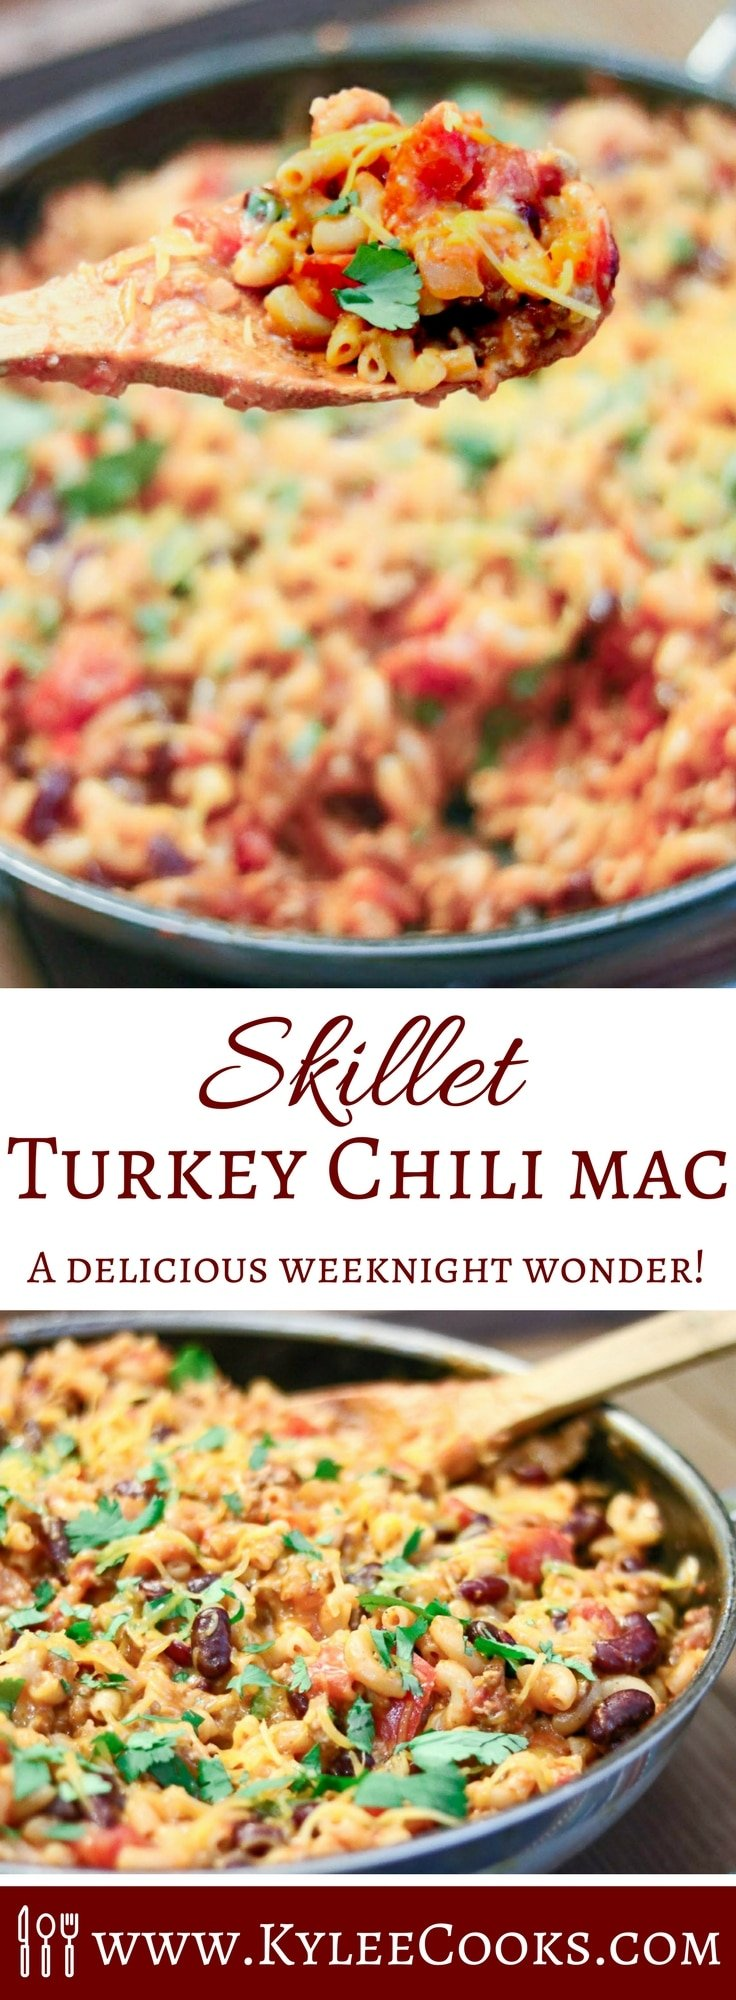 We're bringing childhood back, with this easy Skillet Turkey Chili Mac. Lightened up with turkey vs beef, and packing a protein punch – this one is a family favorite!